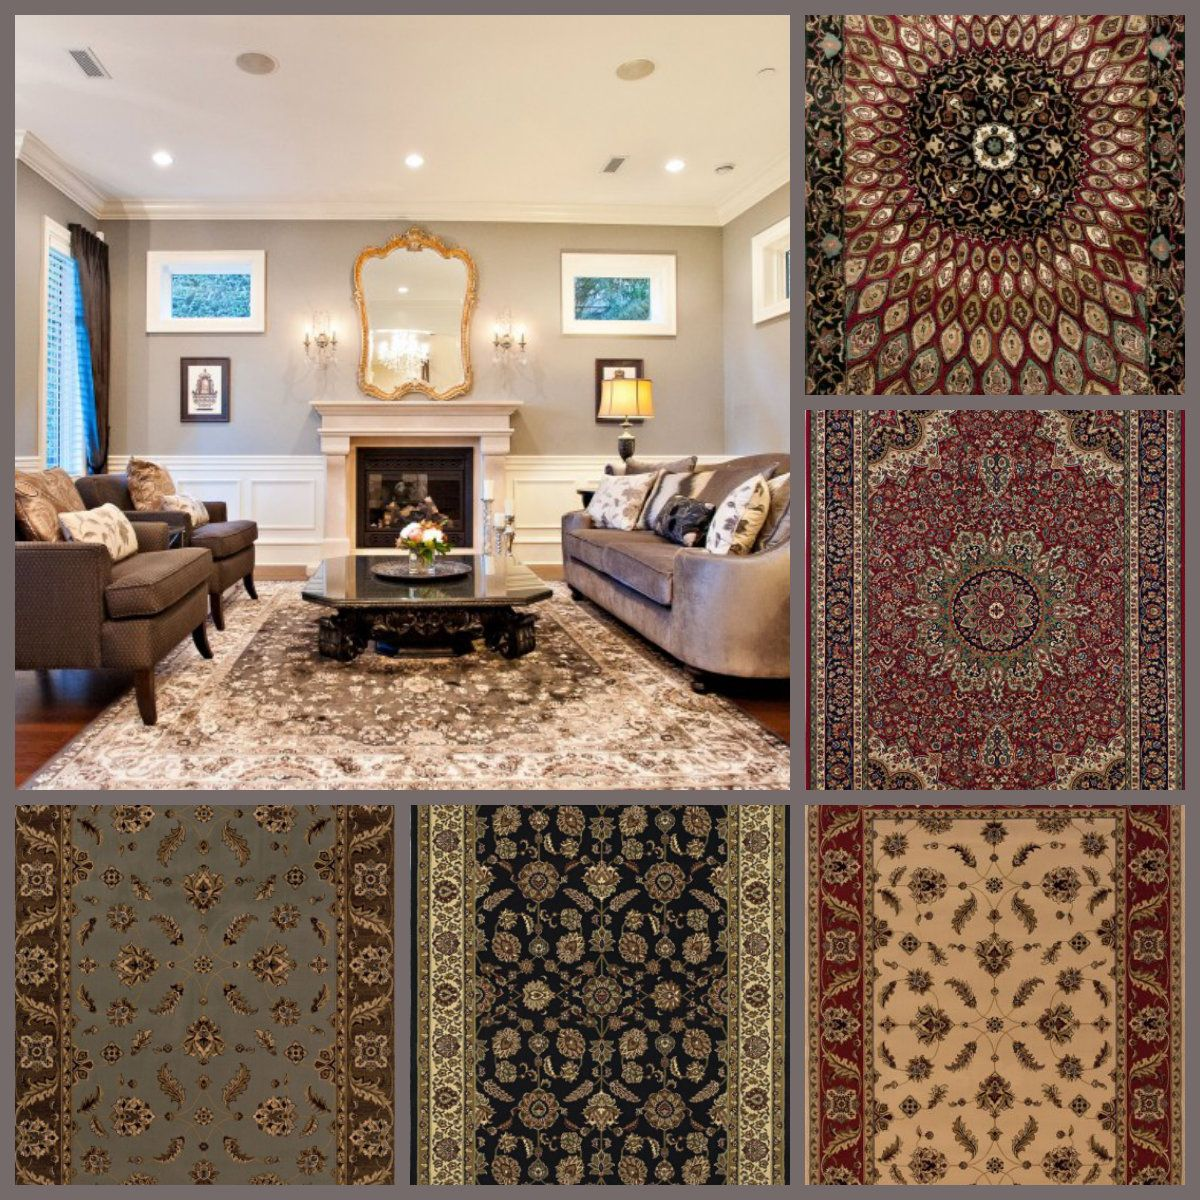 Traditional Area Rugs for Your Living Room Decoration with Different Designs from #Online #AreaRugStore